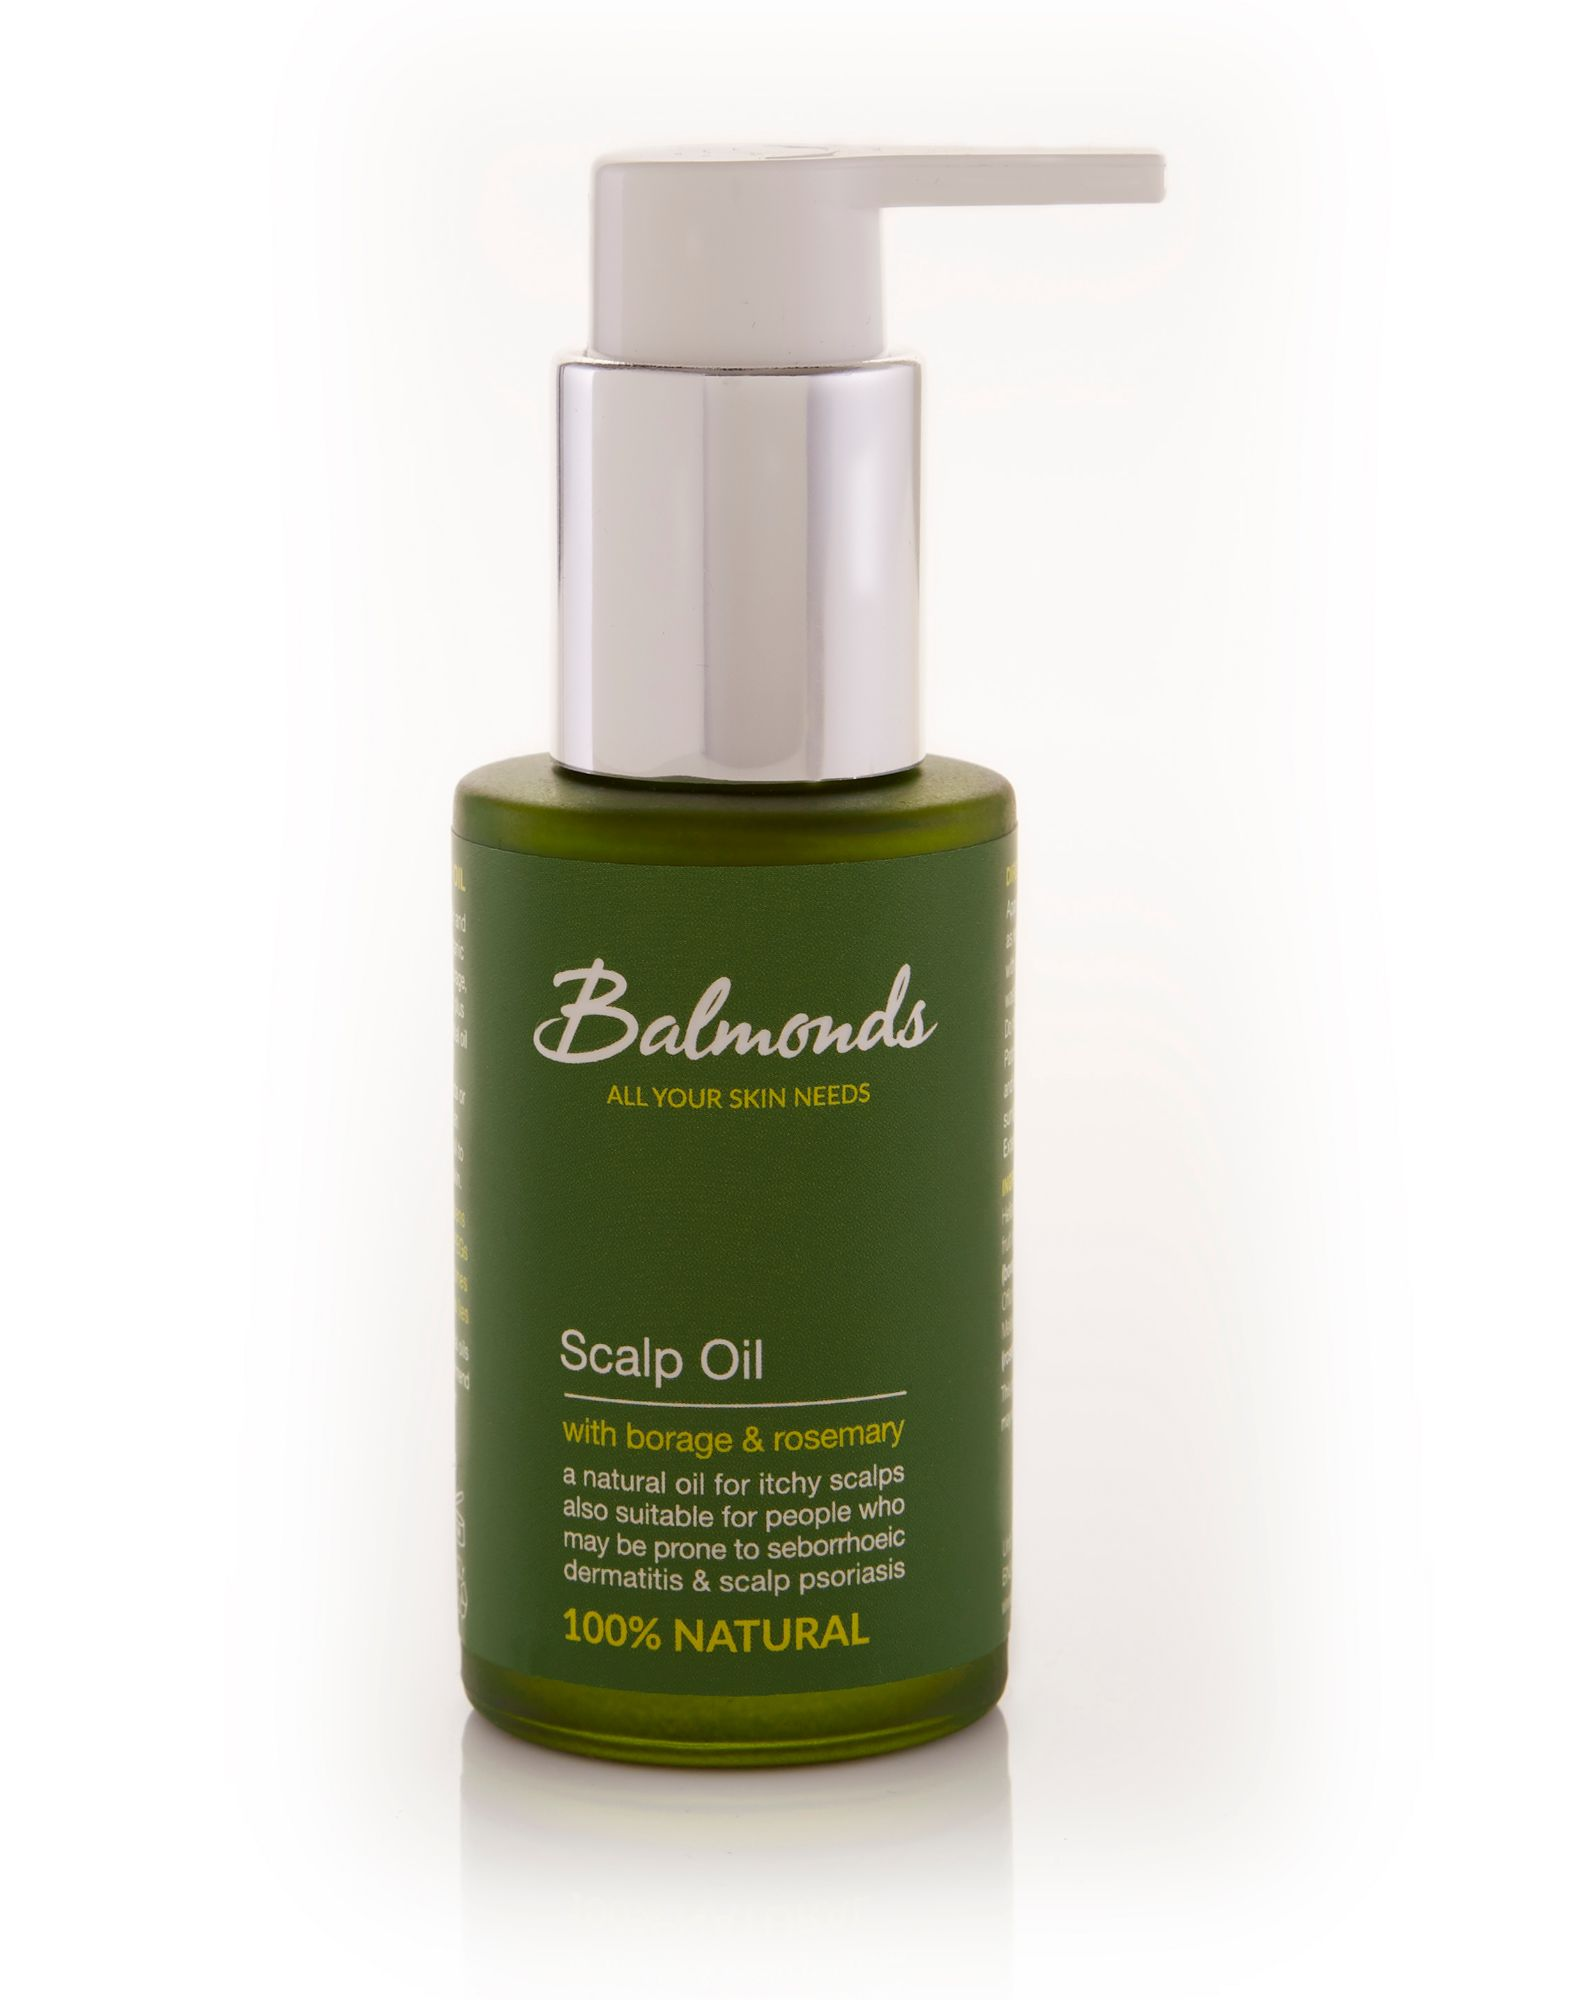 Balmonds 100% natural Scalp Oil